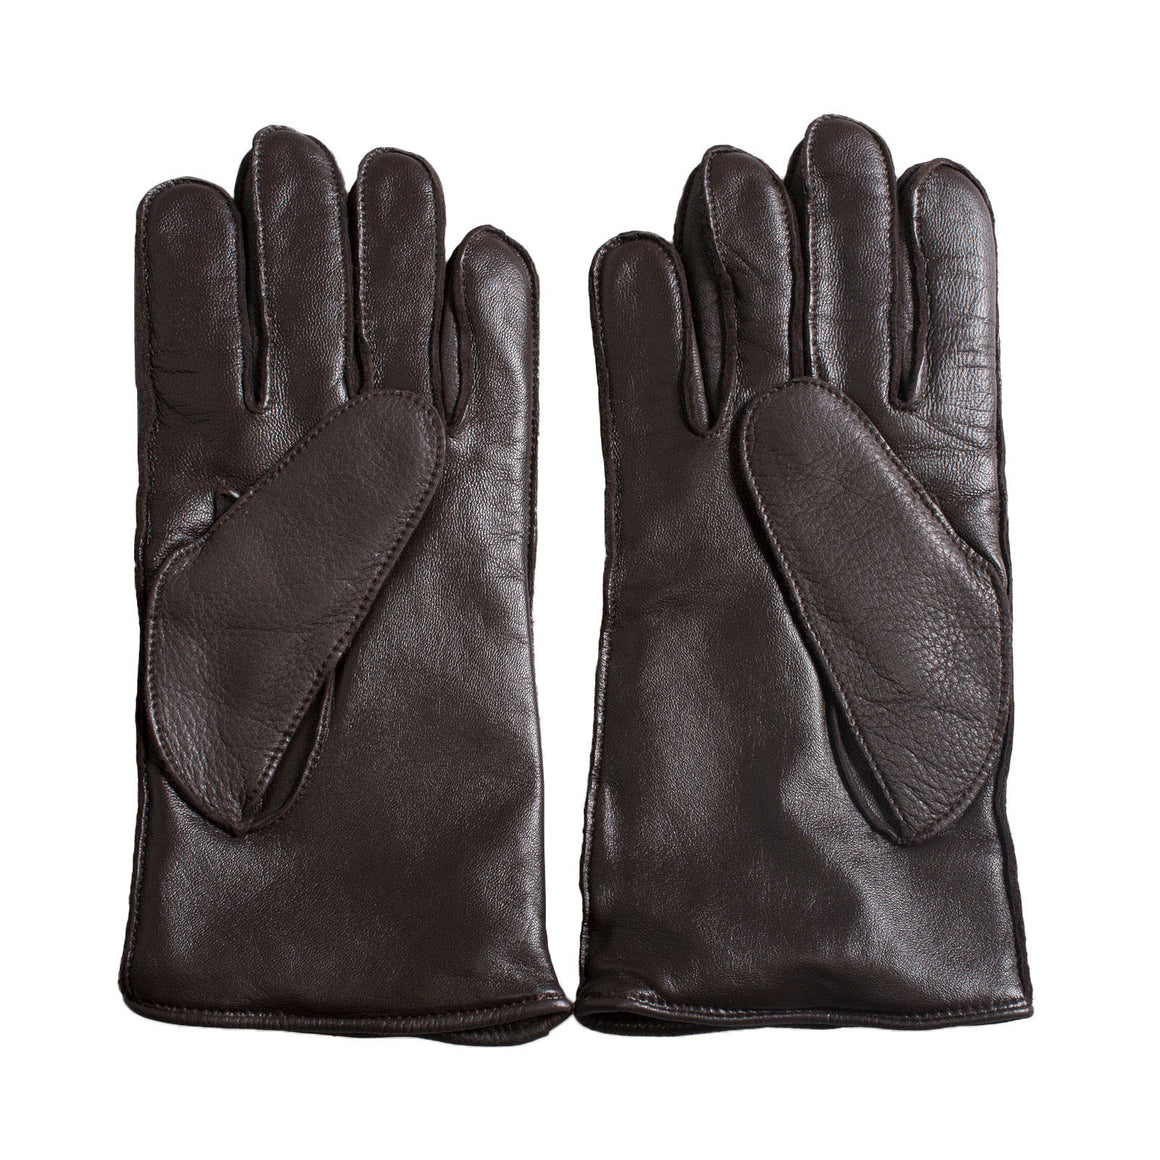 UGG Tech Lambswool Lined Leather Brown Gloves - Men's